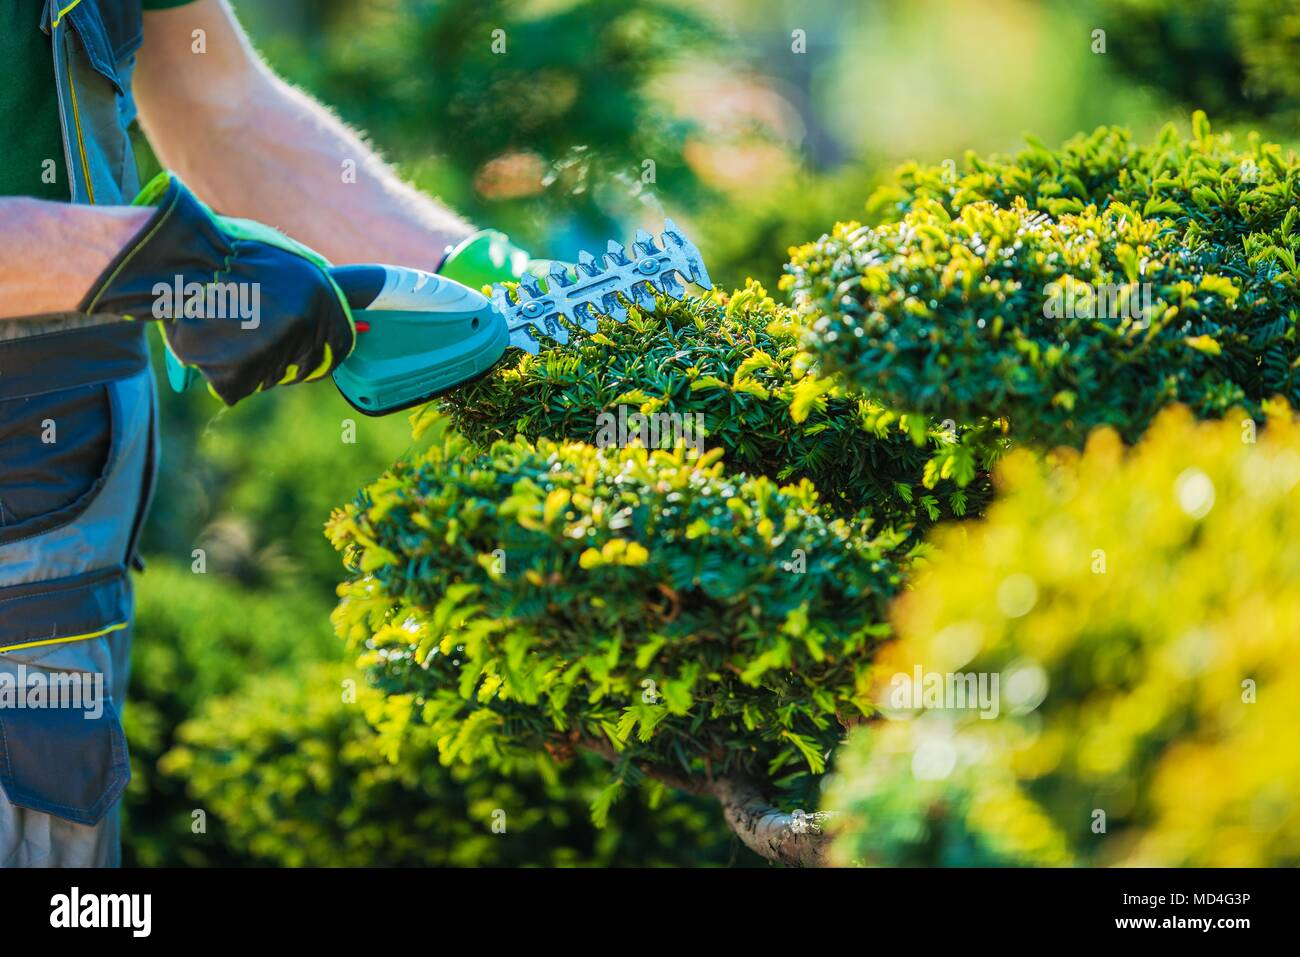 Plants Topiary Trimming by Cordless Trimmer. Closeup Photo. Professional Gardening Theme. - Stock Image